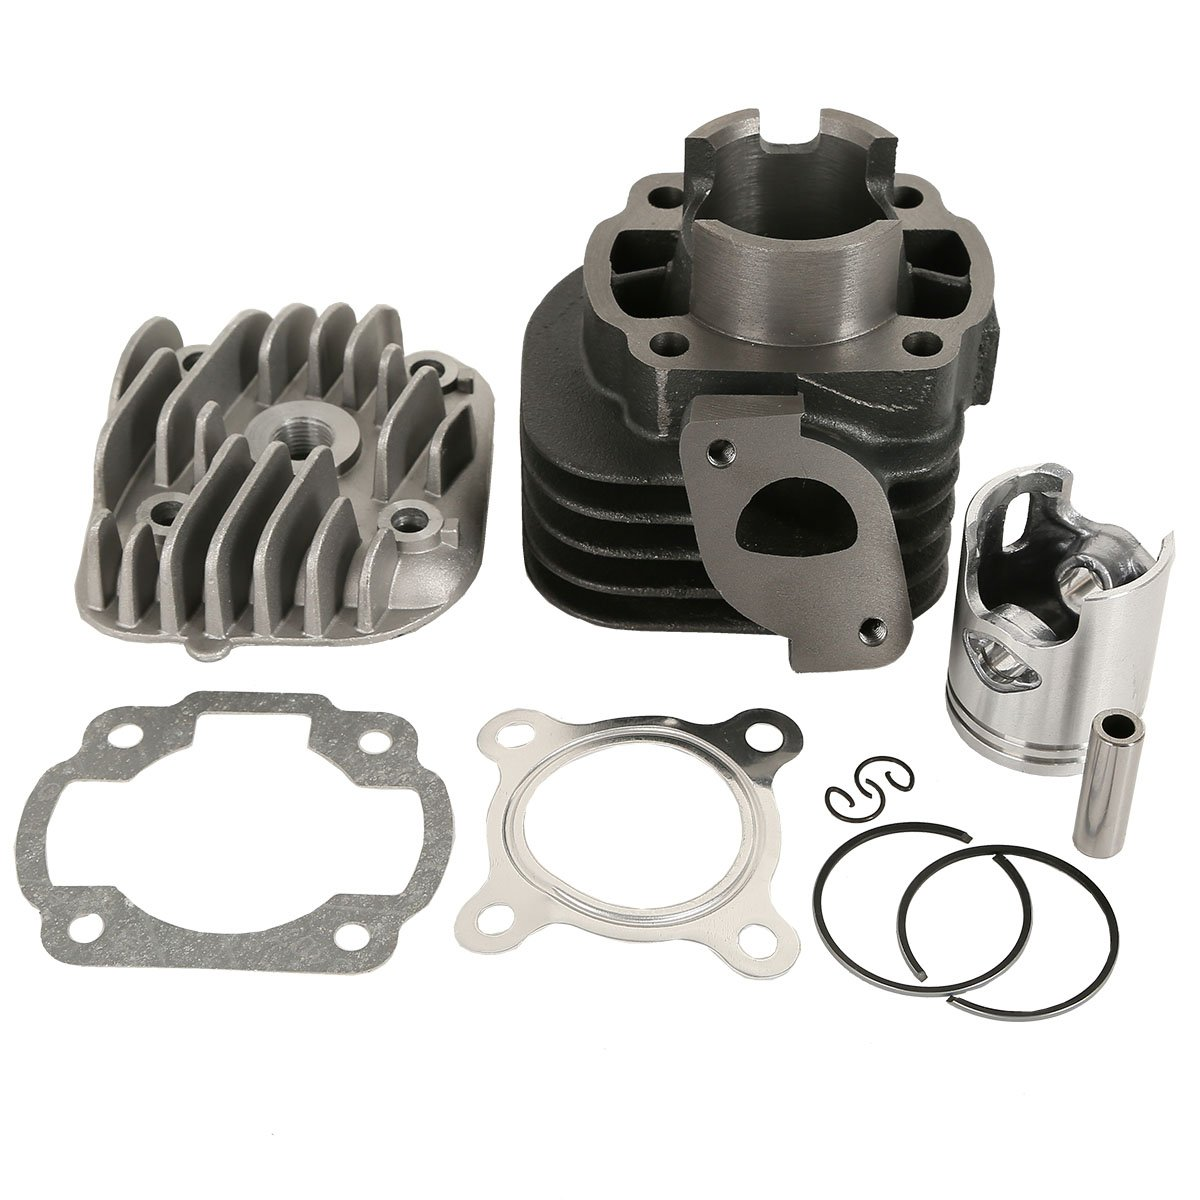 XFMT Cylinder Piston Top End Kit For Polaris Scrambler 50 01-03 Predator 50 04-07 ATV